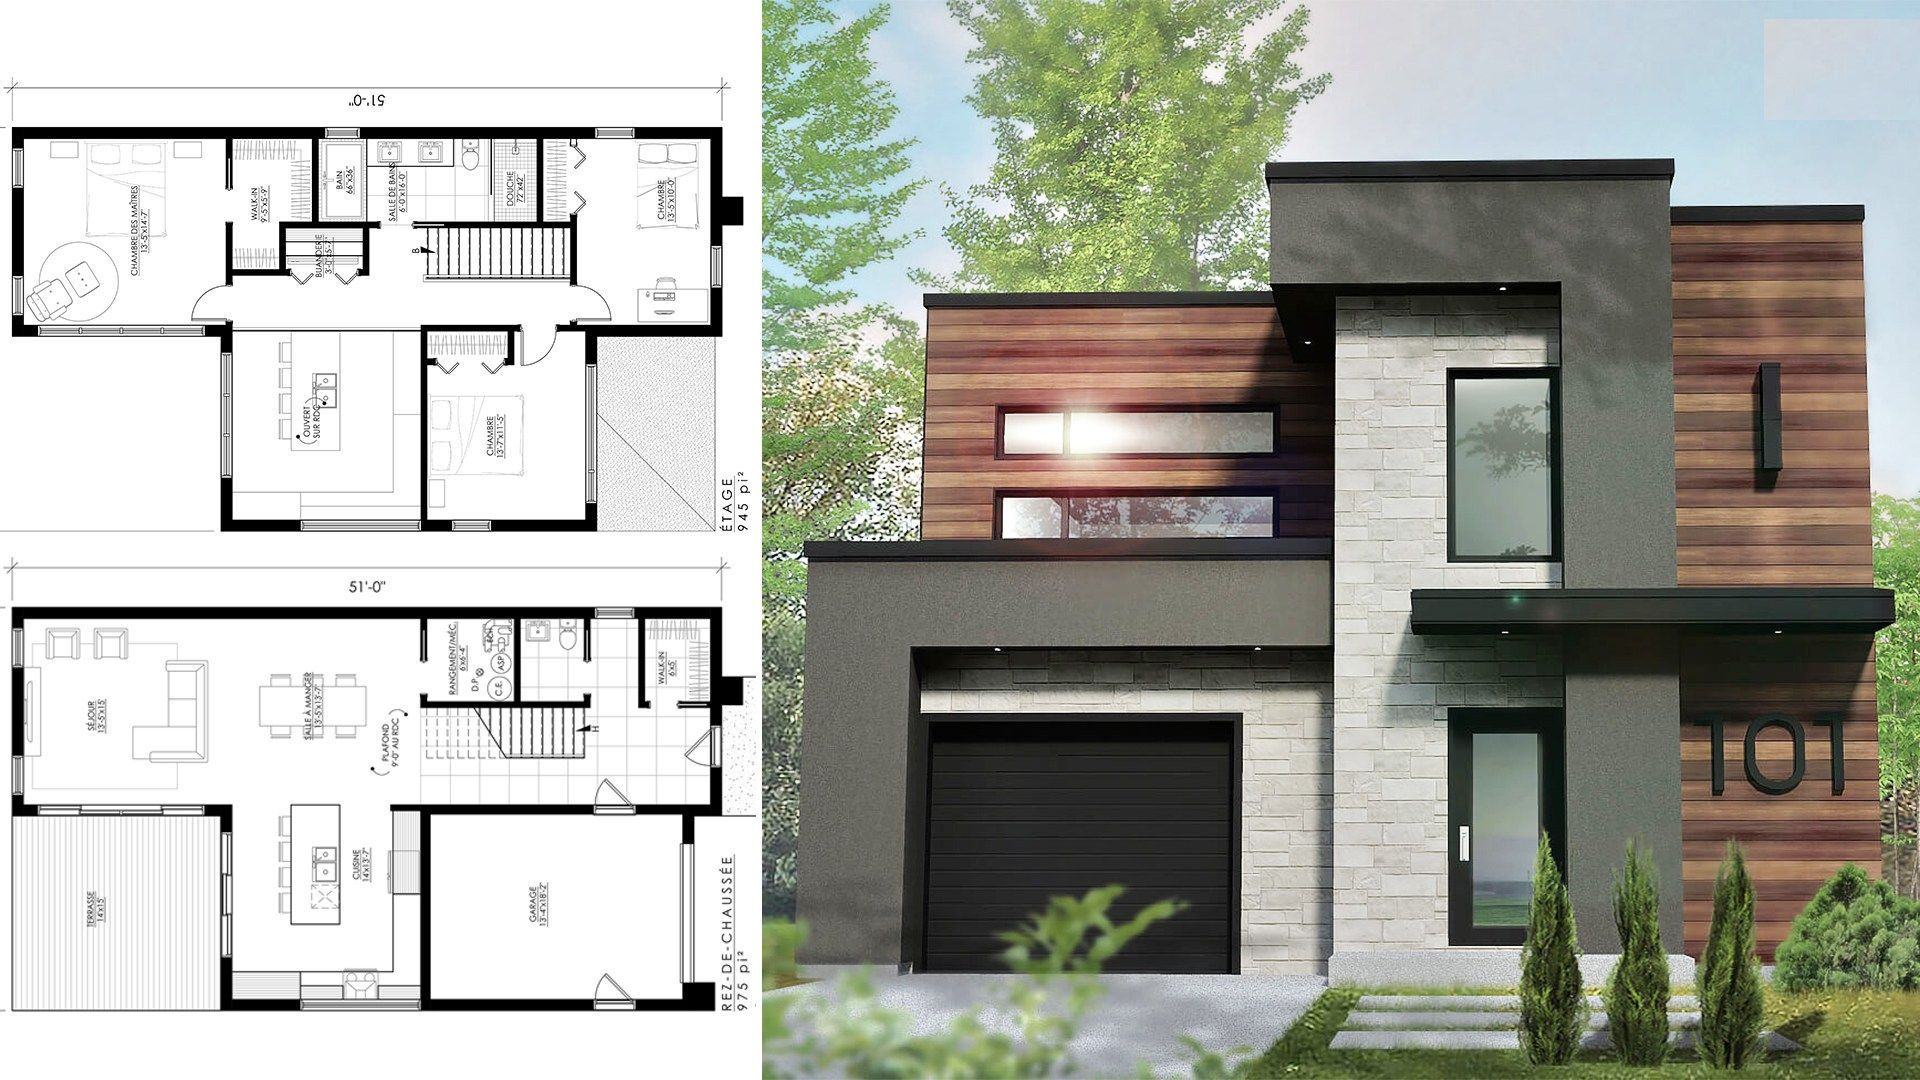 Boutique Homes 29x51 with 3 Bedrooms | Boutique homes, Modern ...